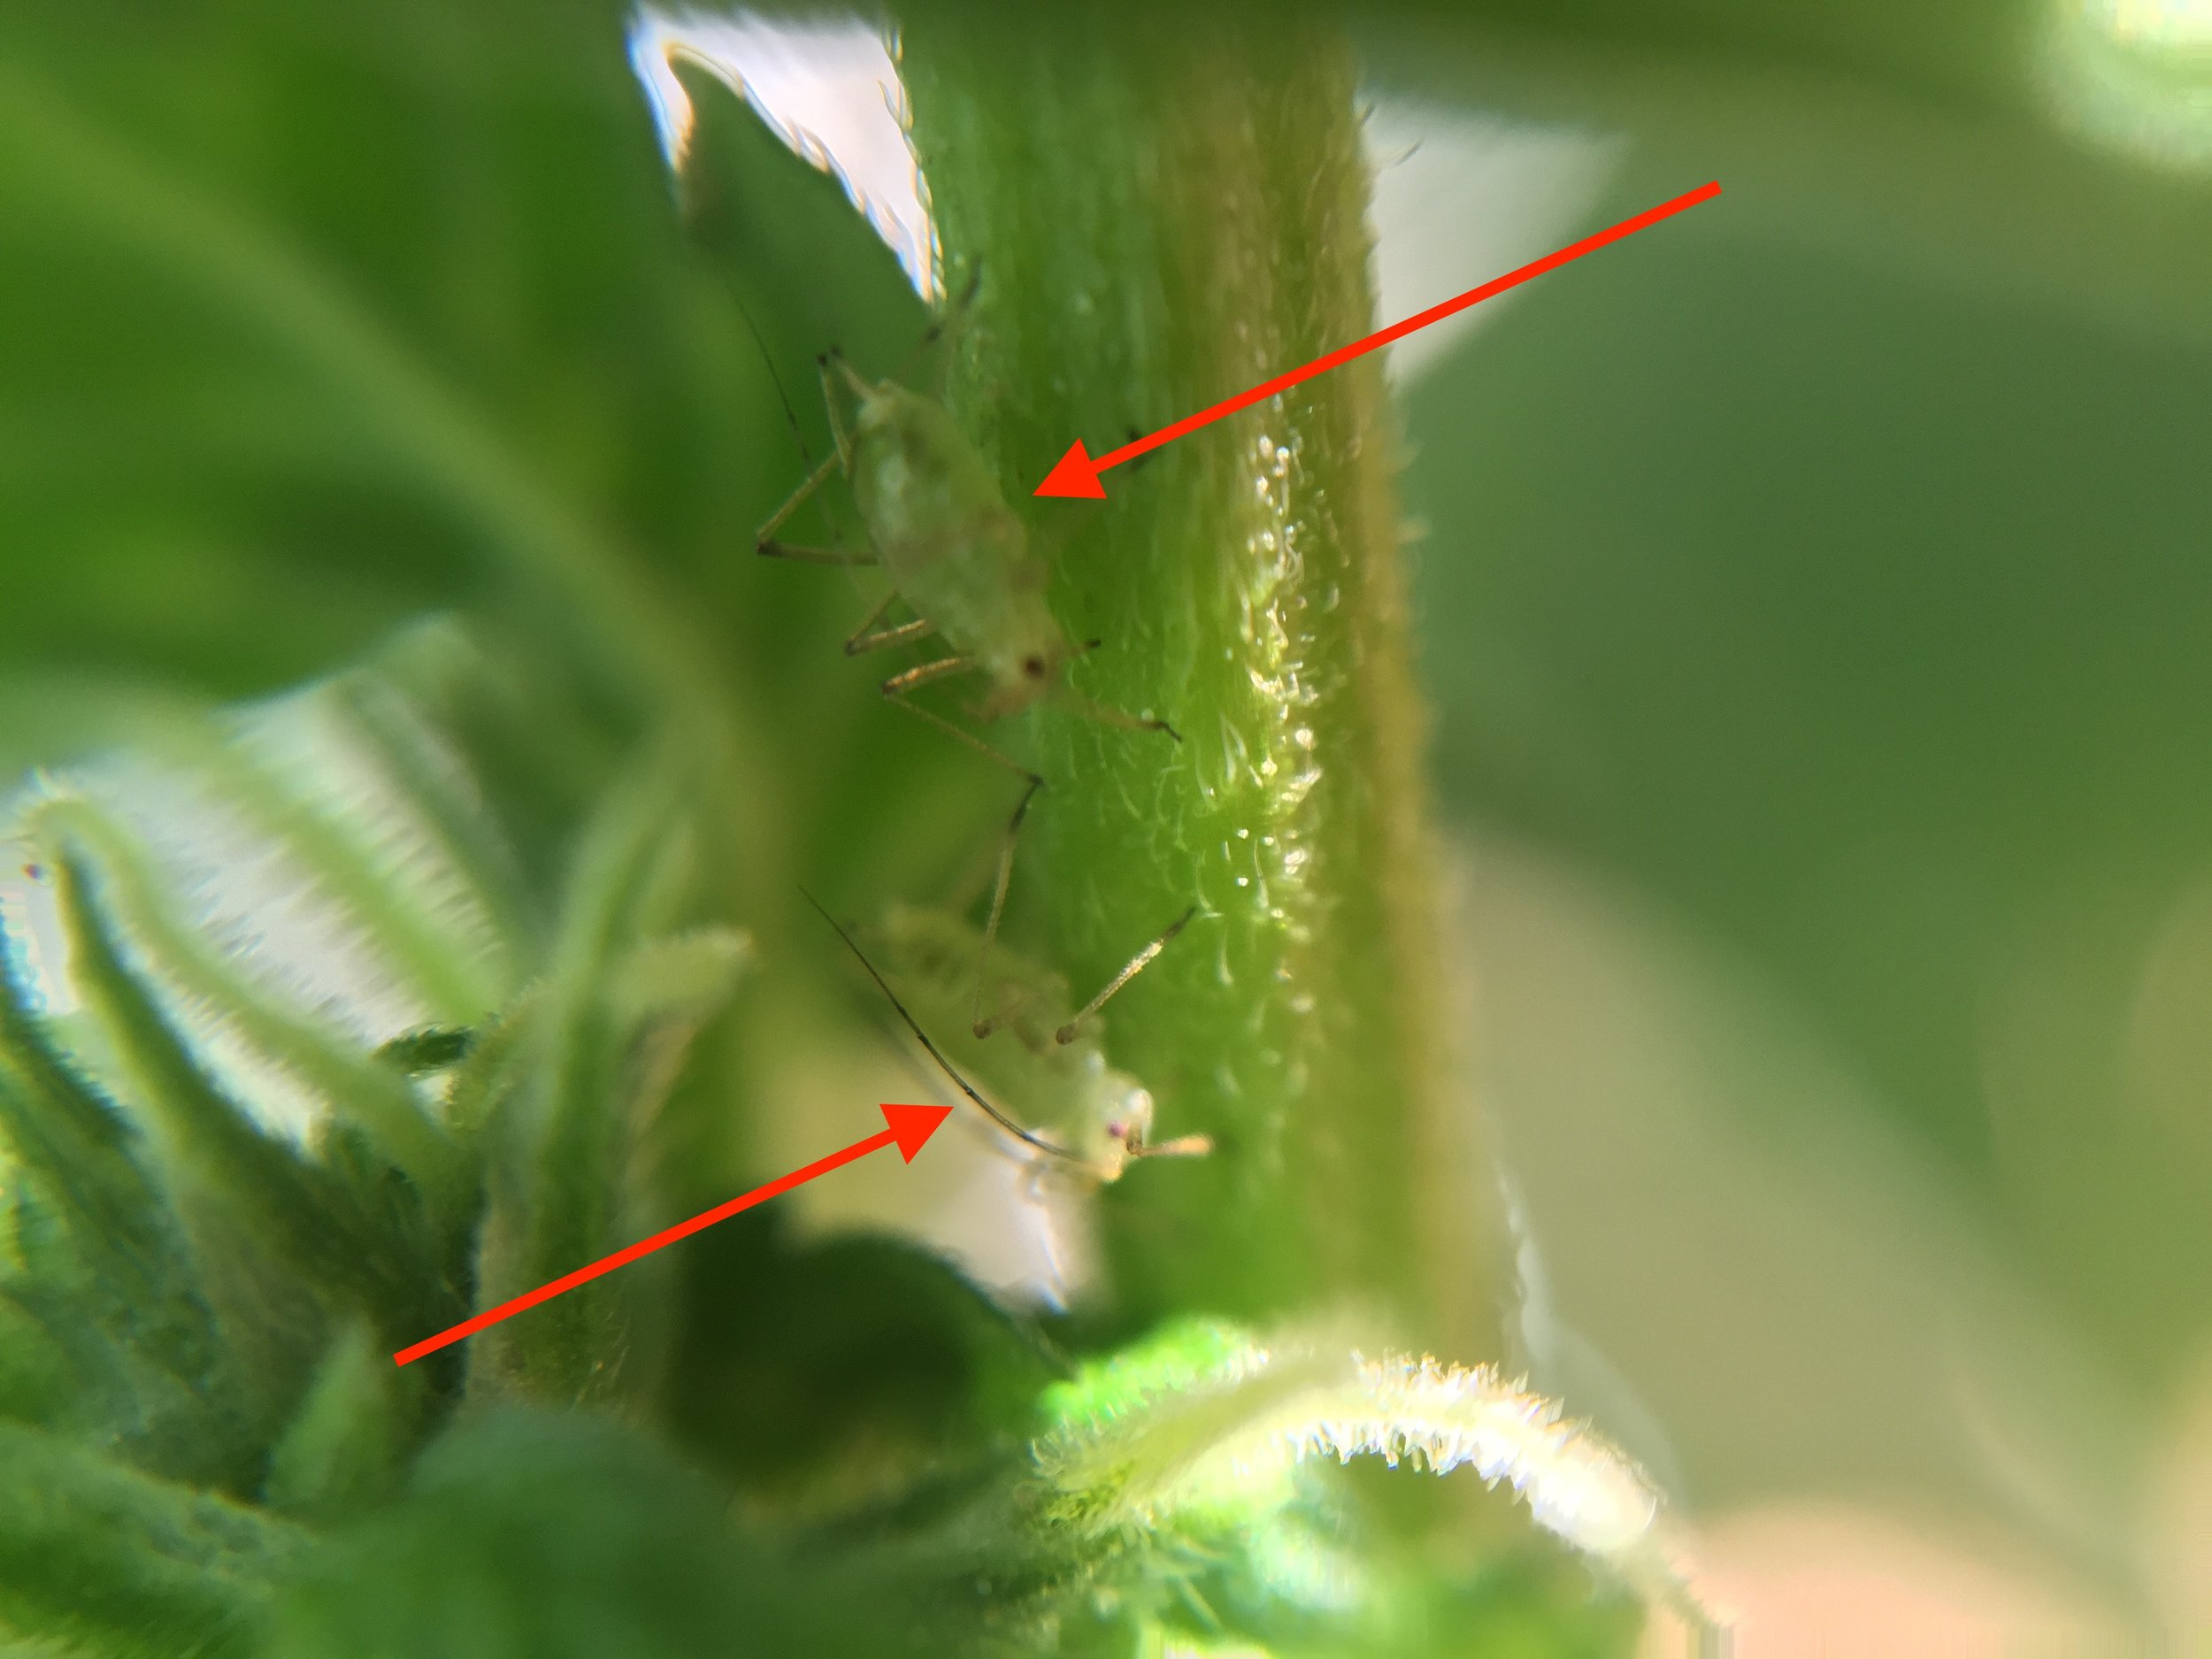 2 Aphids hiding in the shade of a cannabis branch.